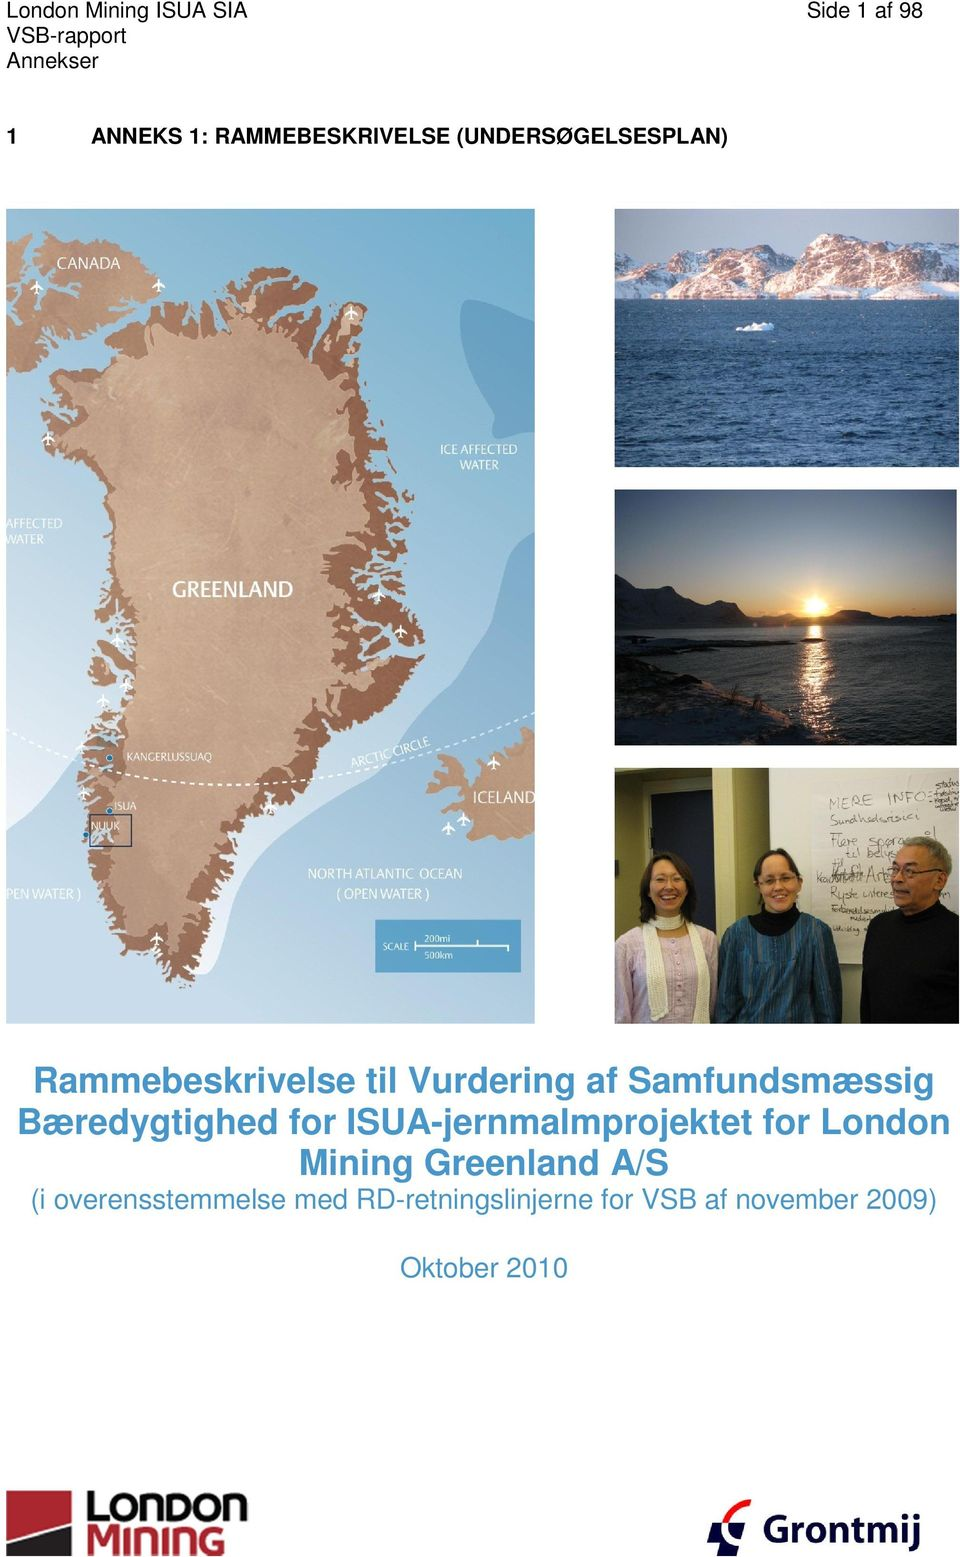 ISUA-jernmalmprojektet for London Mining Greenland A/S (i